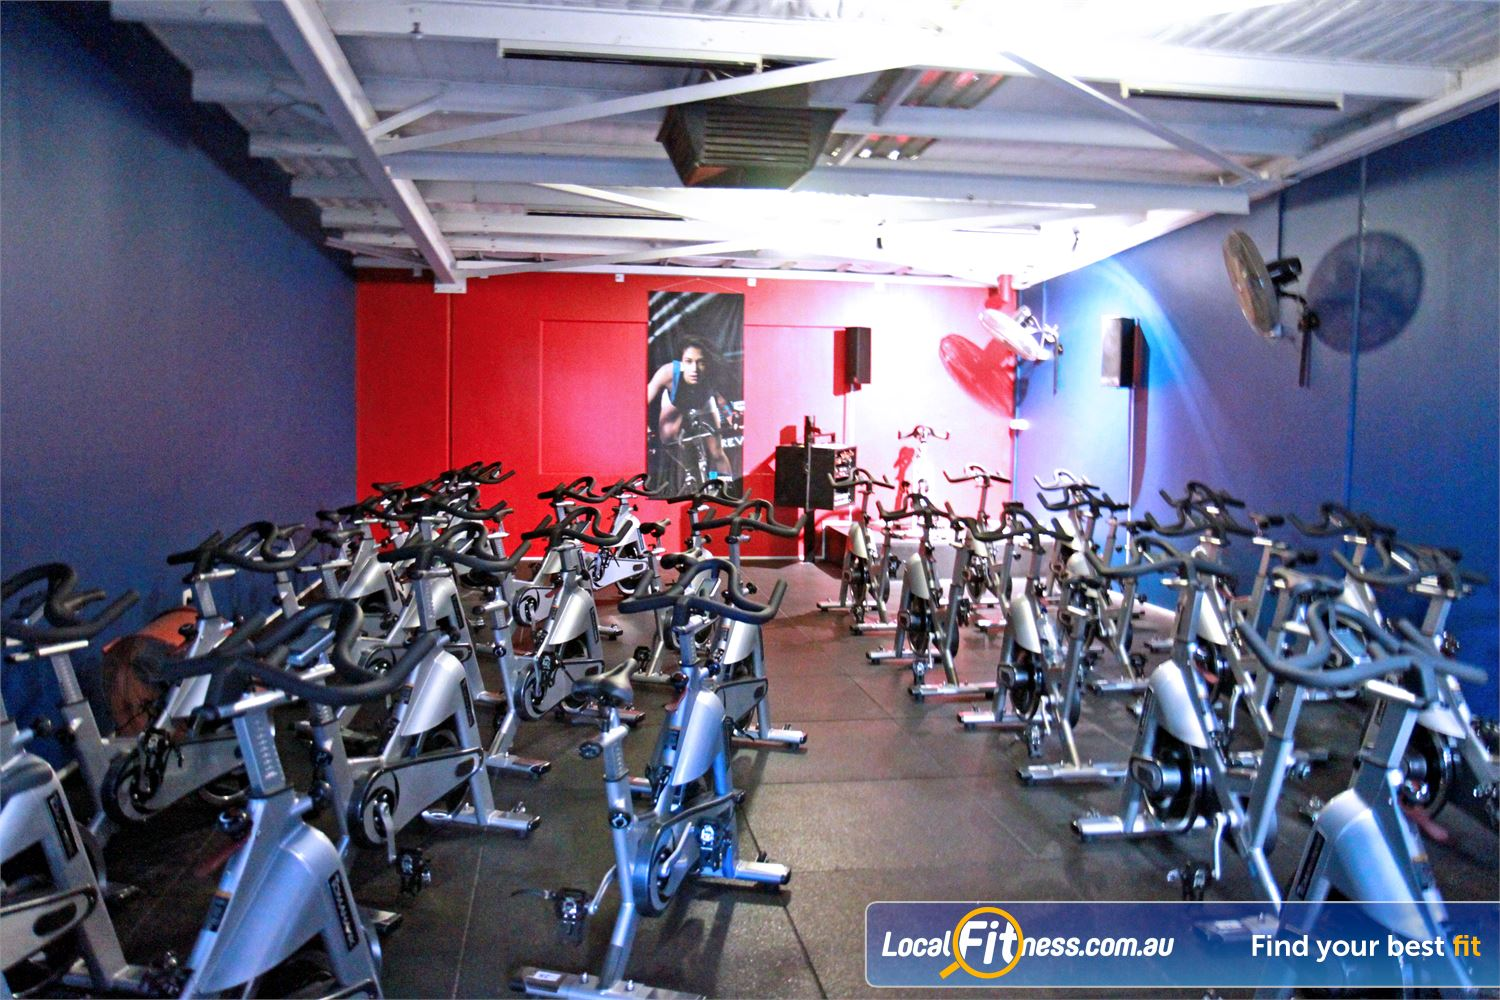 Goodlife Health Clubs Kingsway Near Wangara Dedicated Madeley spin cycle studio.